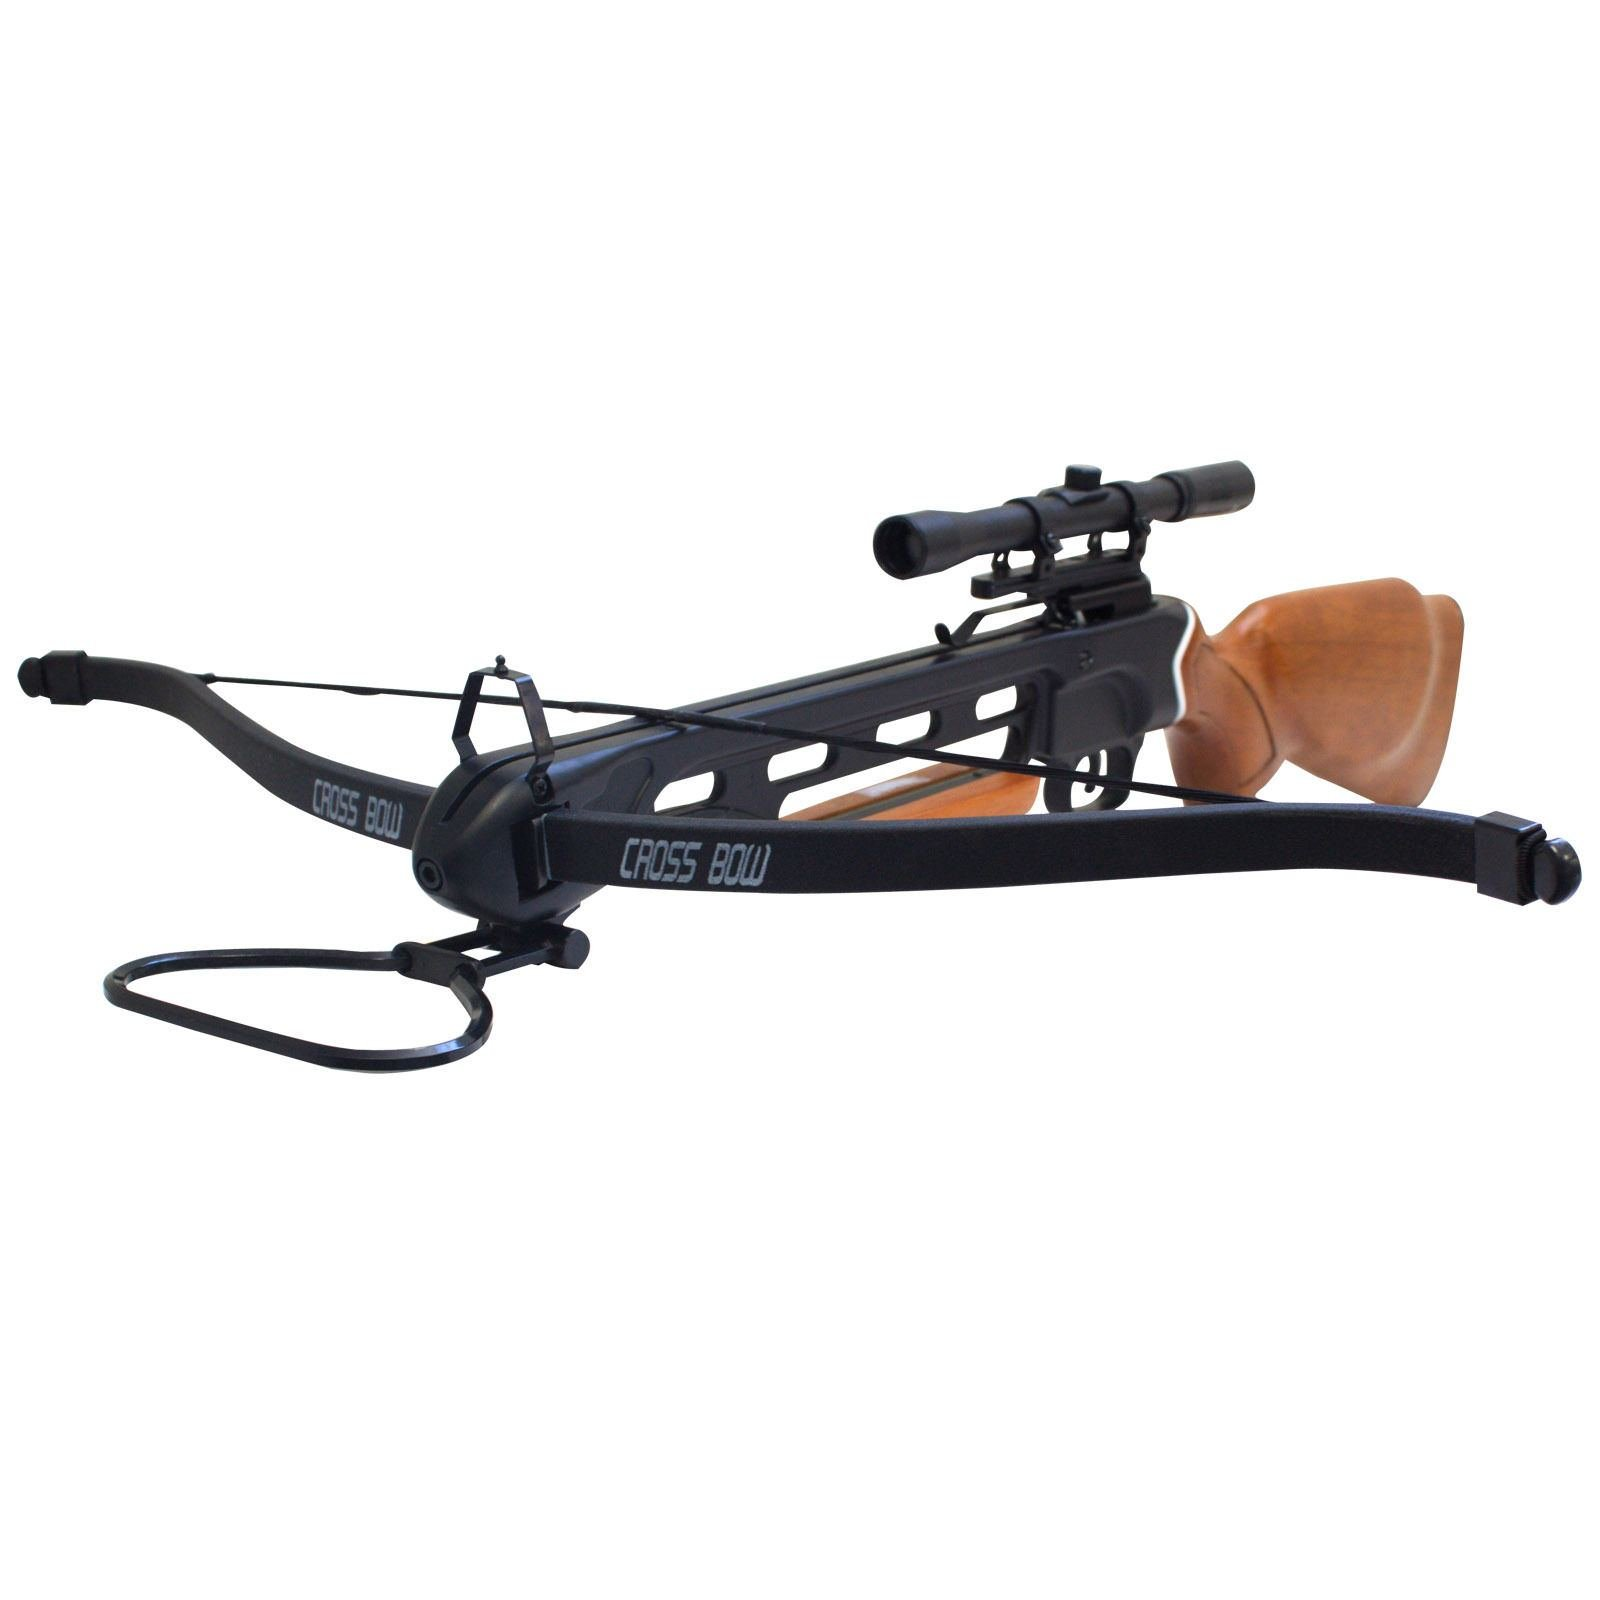 Hunting Crossbows 150 lbs Real Wood Hunting Crossbow 14 Arrows + 4x20 Scope Crossbow Bolts